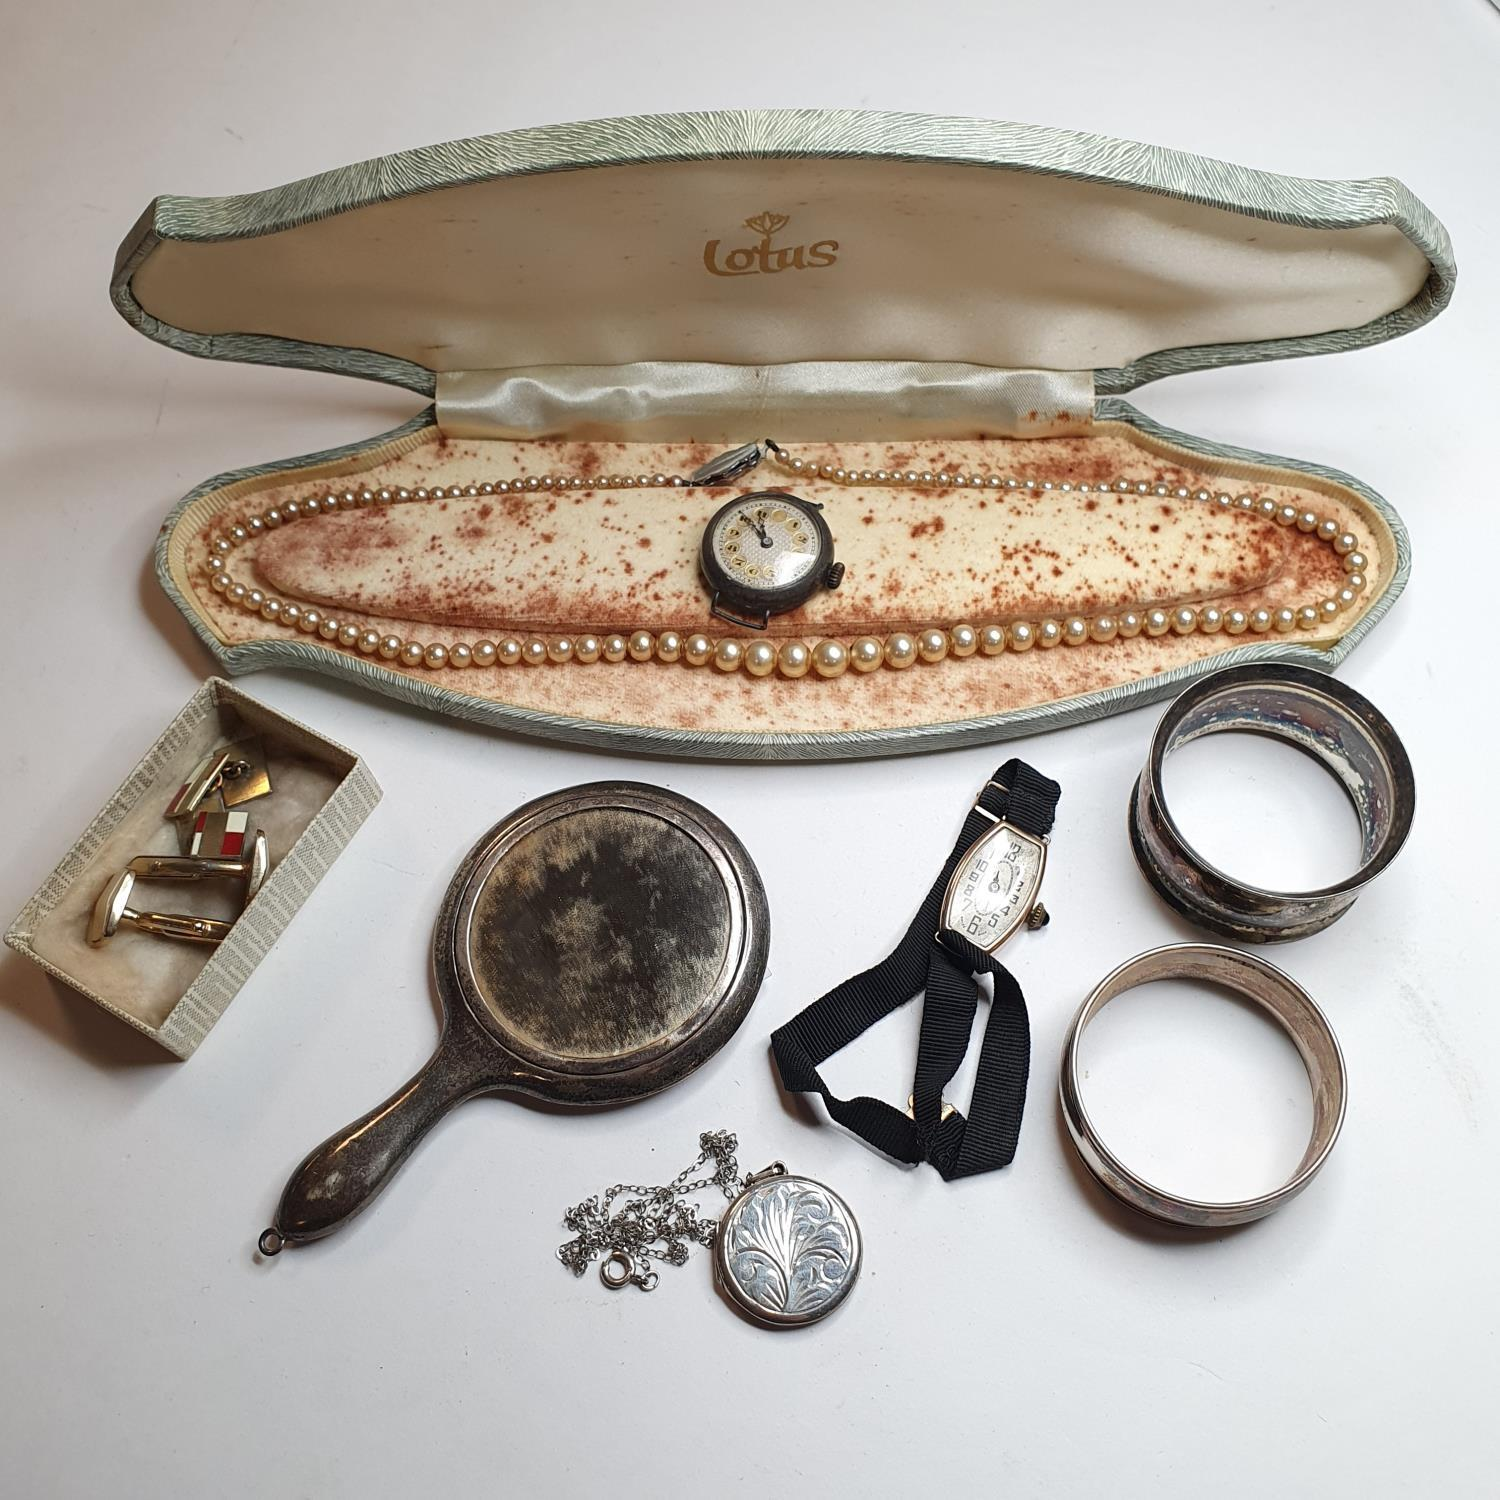 A lady's 9ct wristwatch, costume jewellery and other items